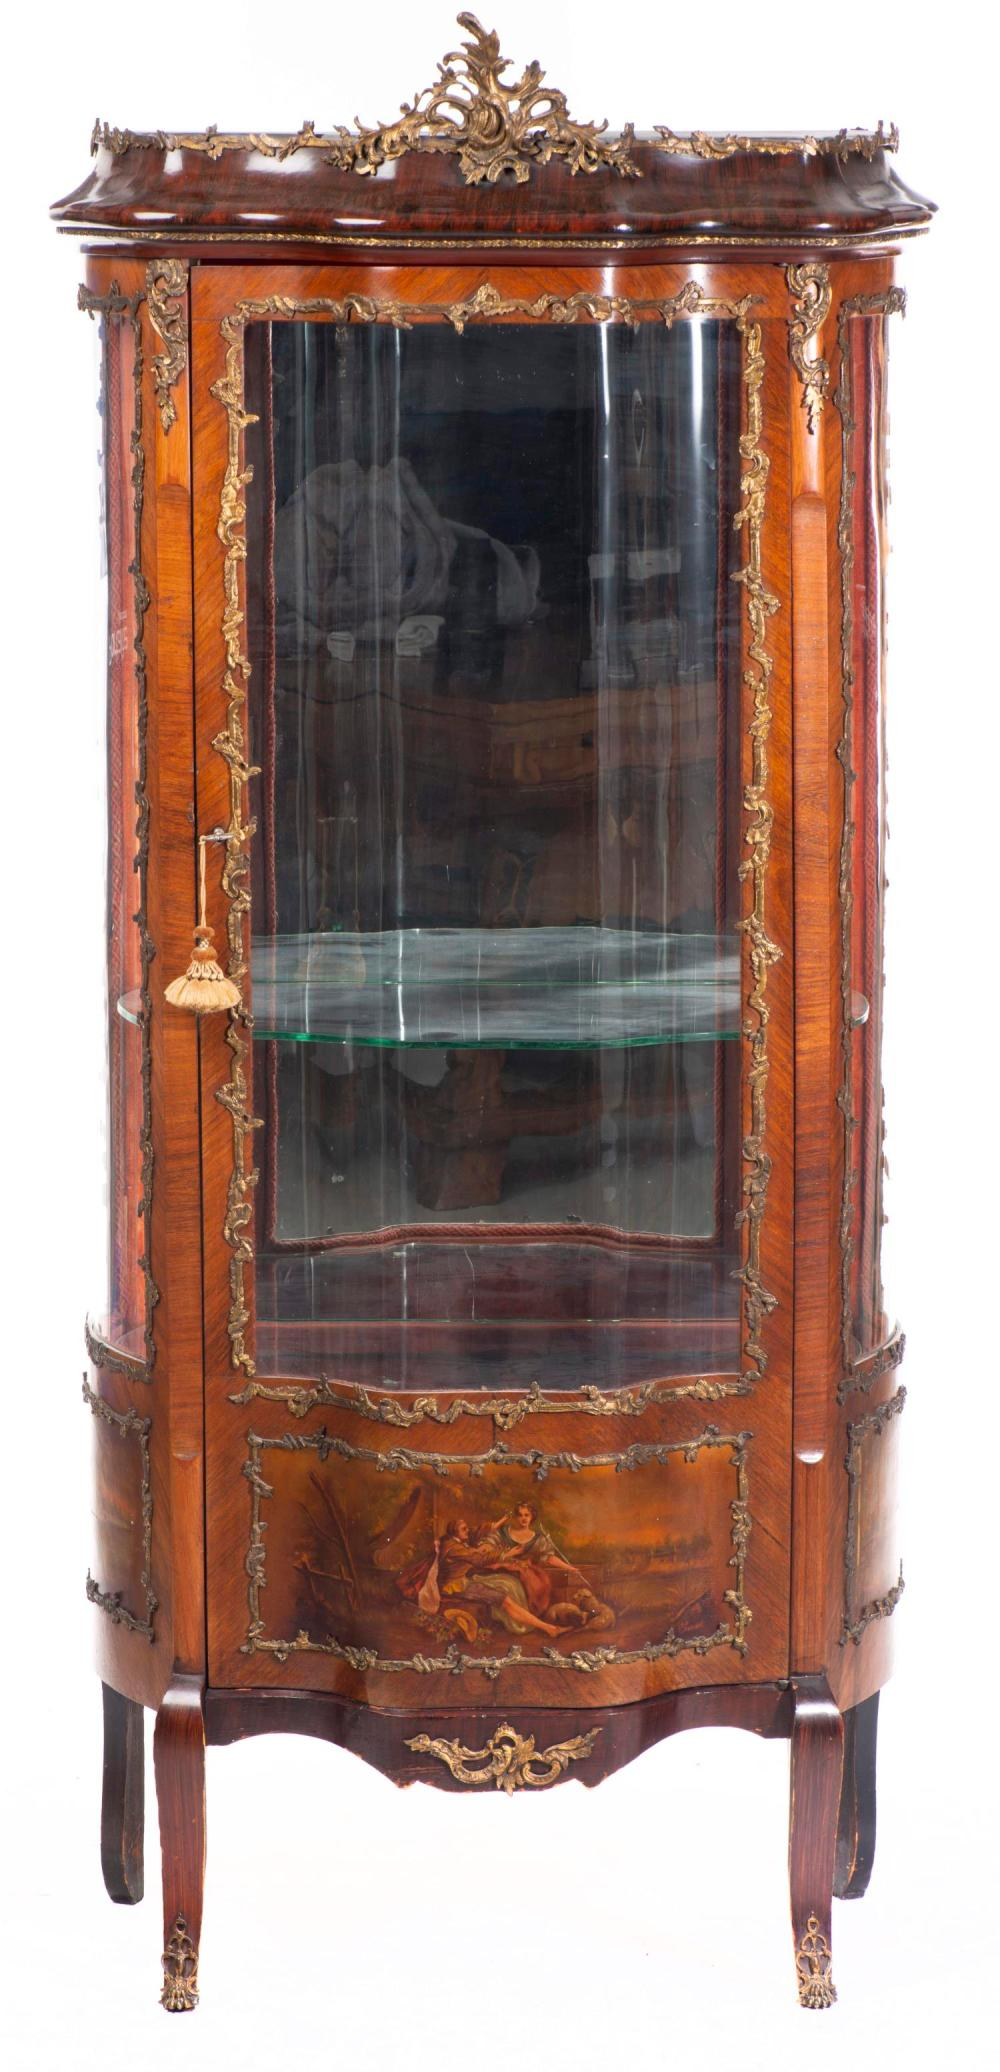 Meubles Antiques France European Cabinets For Sale At Online Auction Buy Rare European